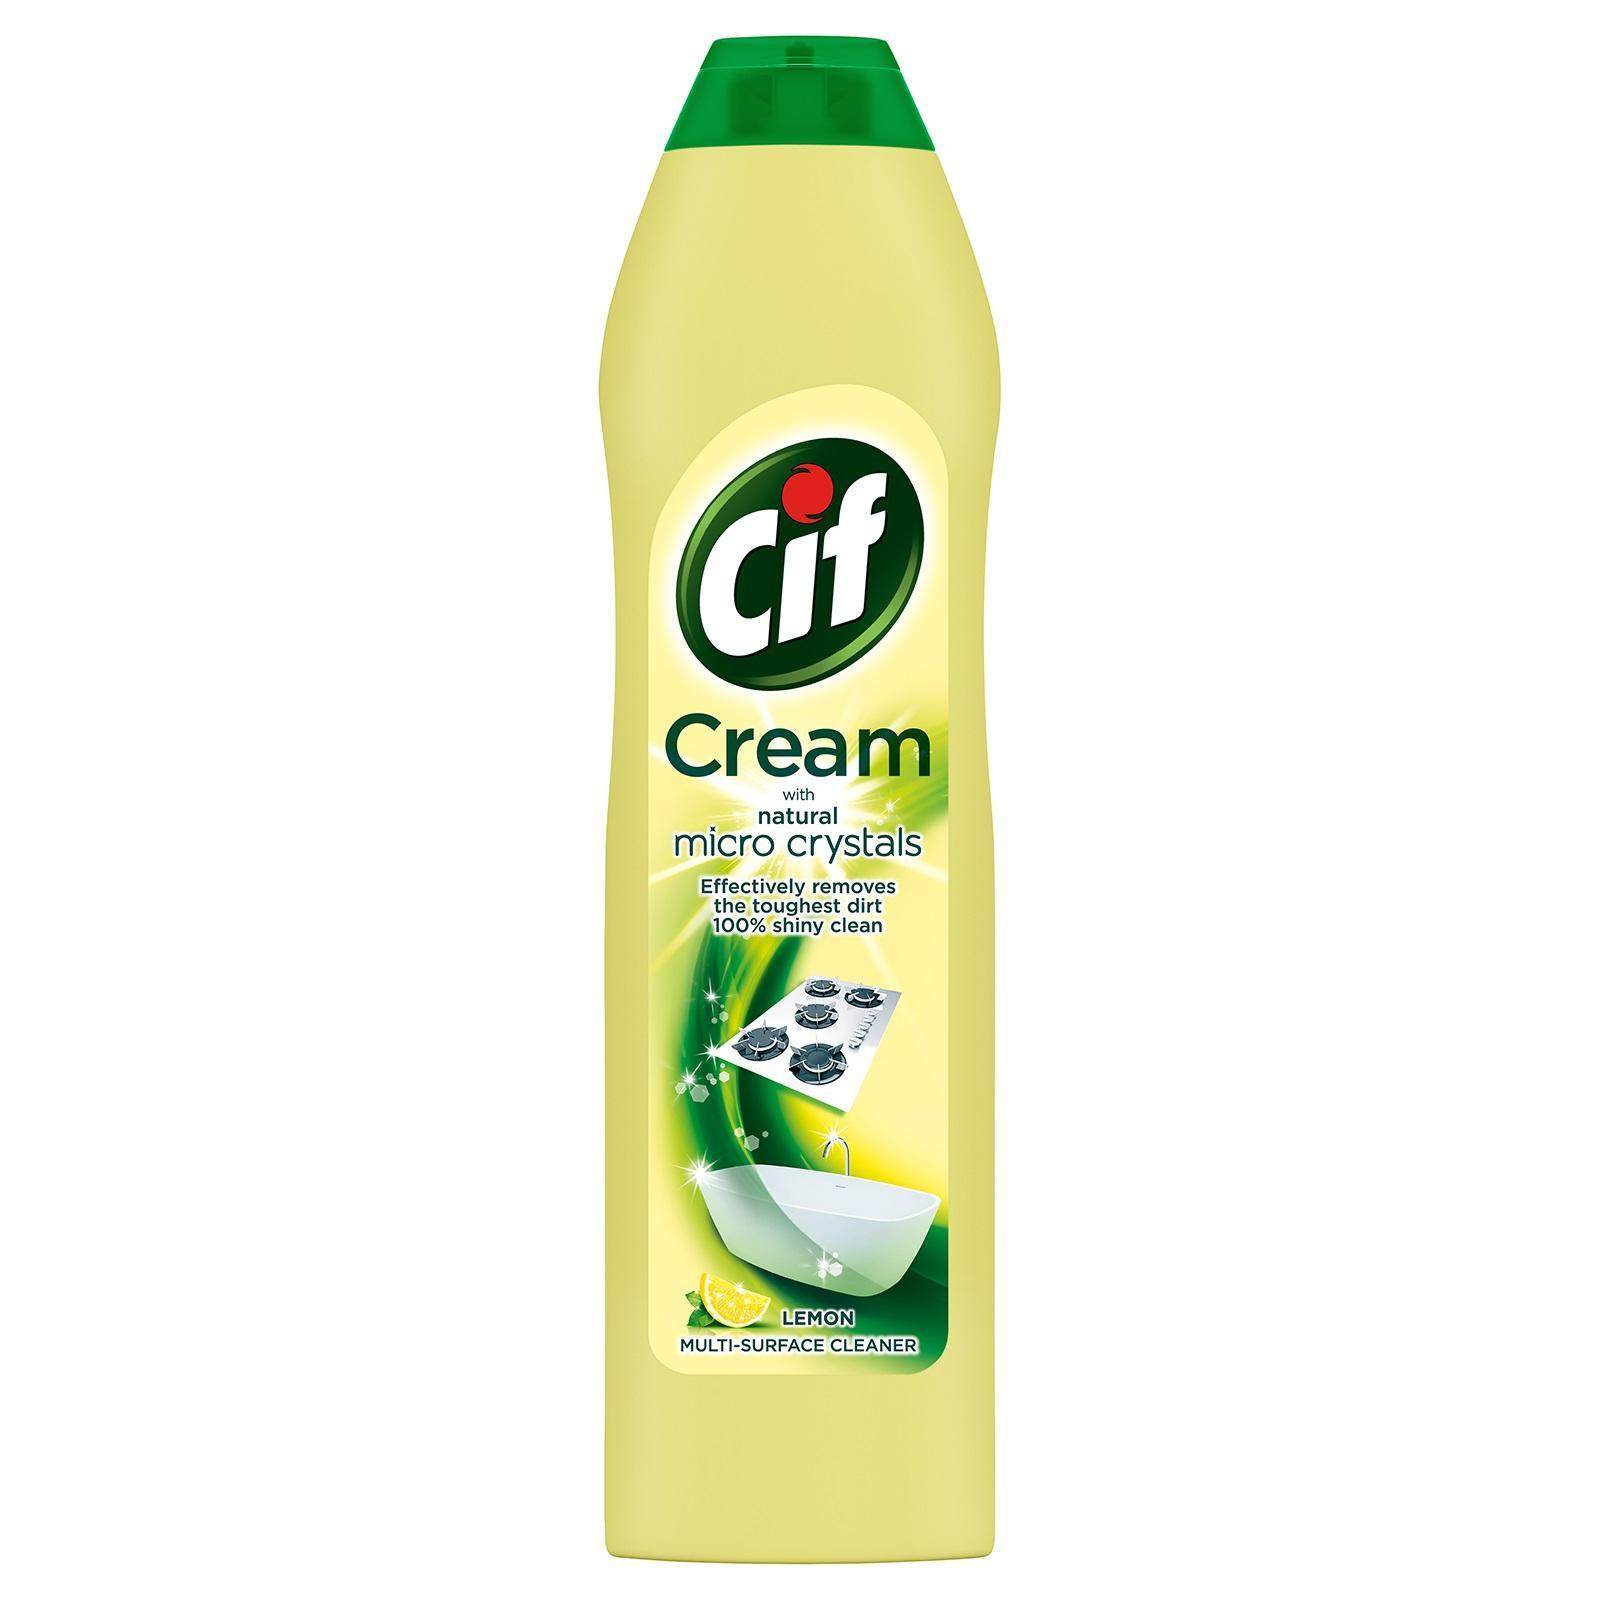 CIF Cream With Micro Crystals Surface Cleaner - Lemon - Indonesia